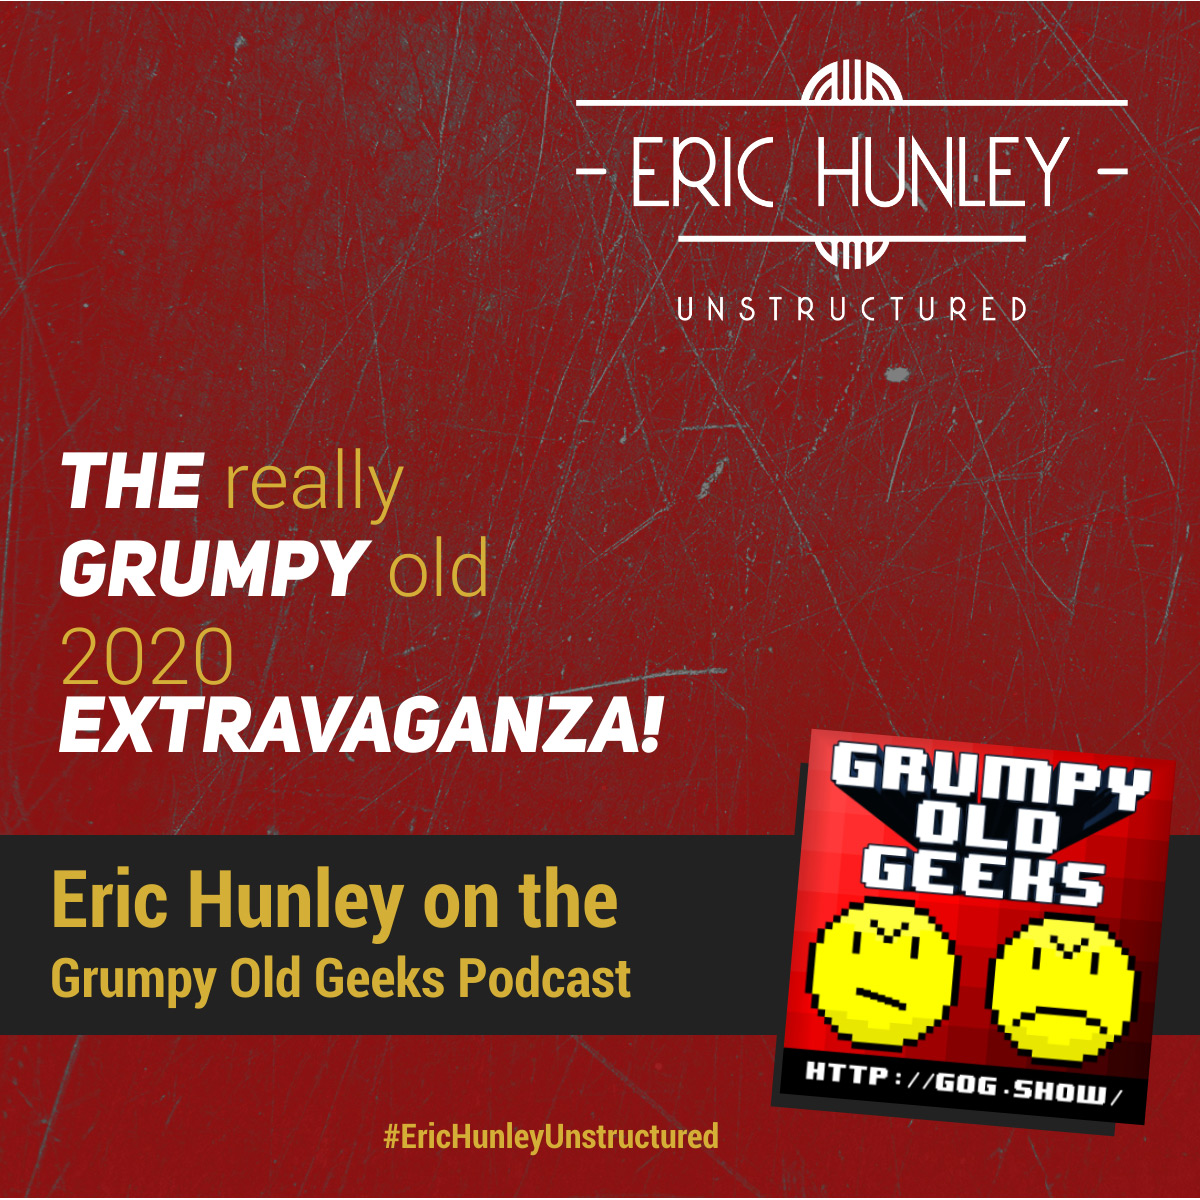 Eric Hunley Podcast Appearance Interviews - Grumpy Old Geeks Podcast Square Post